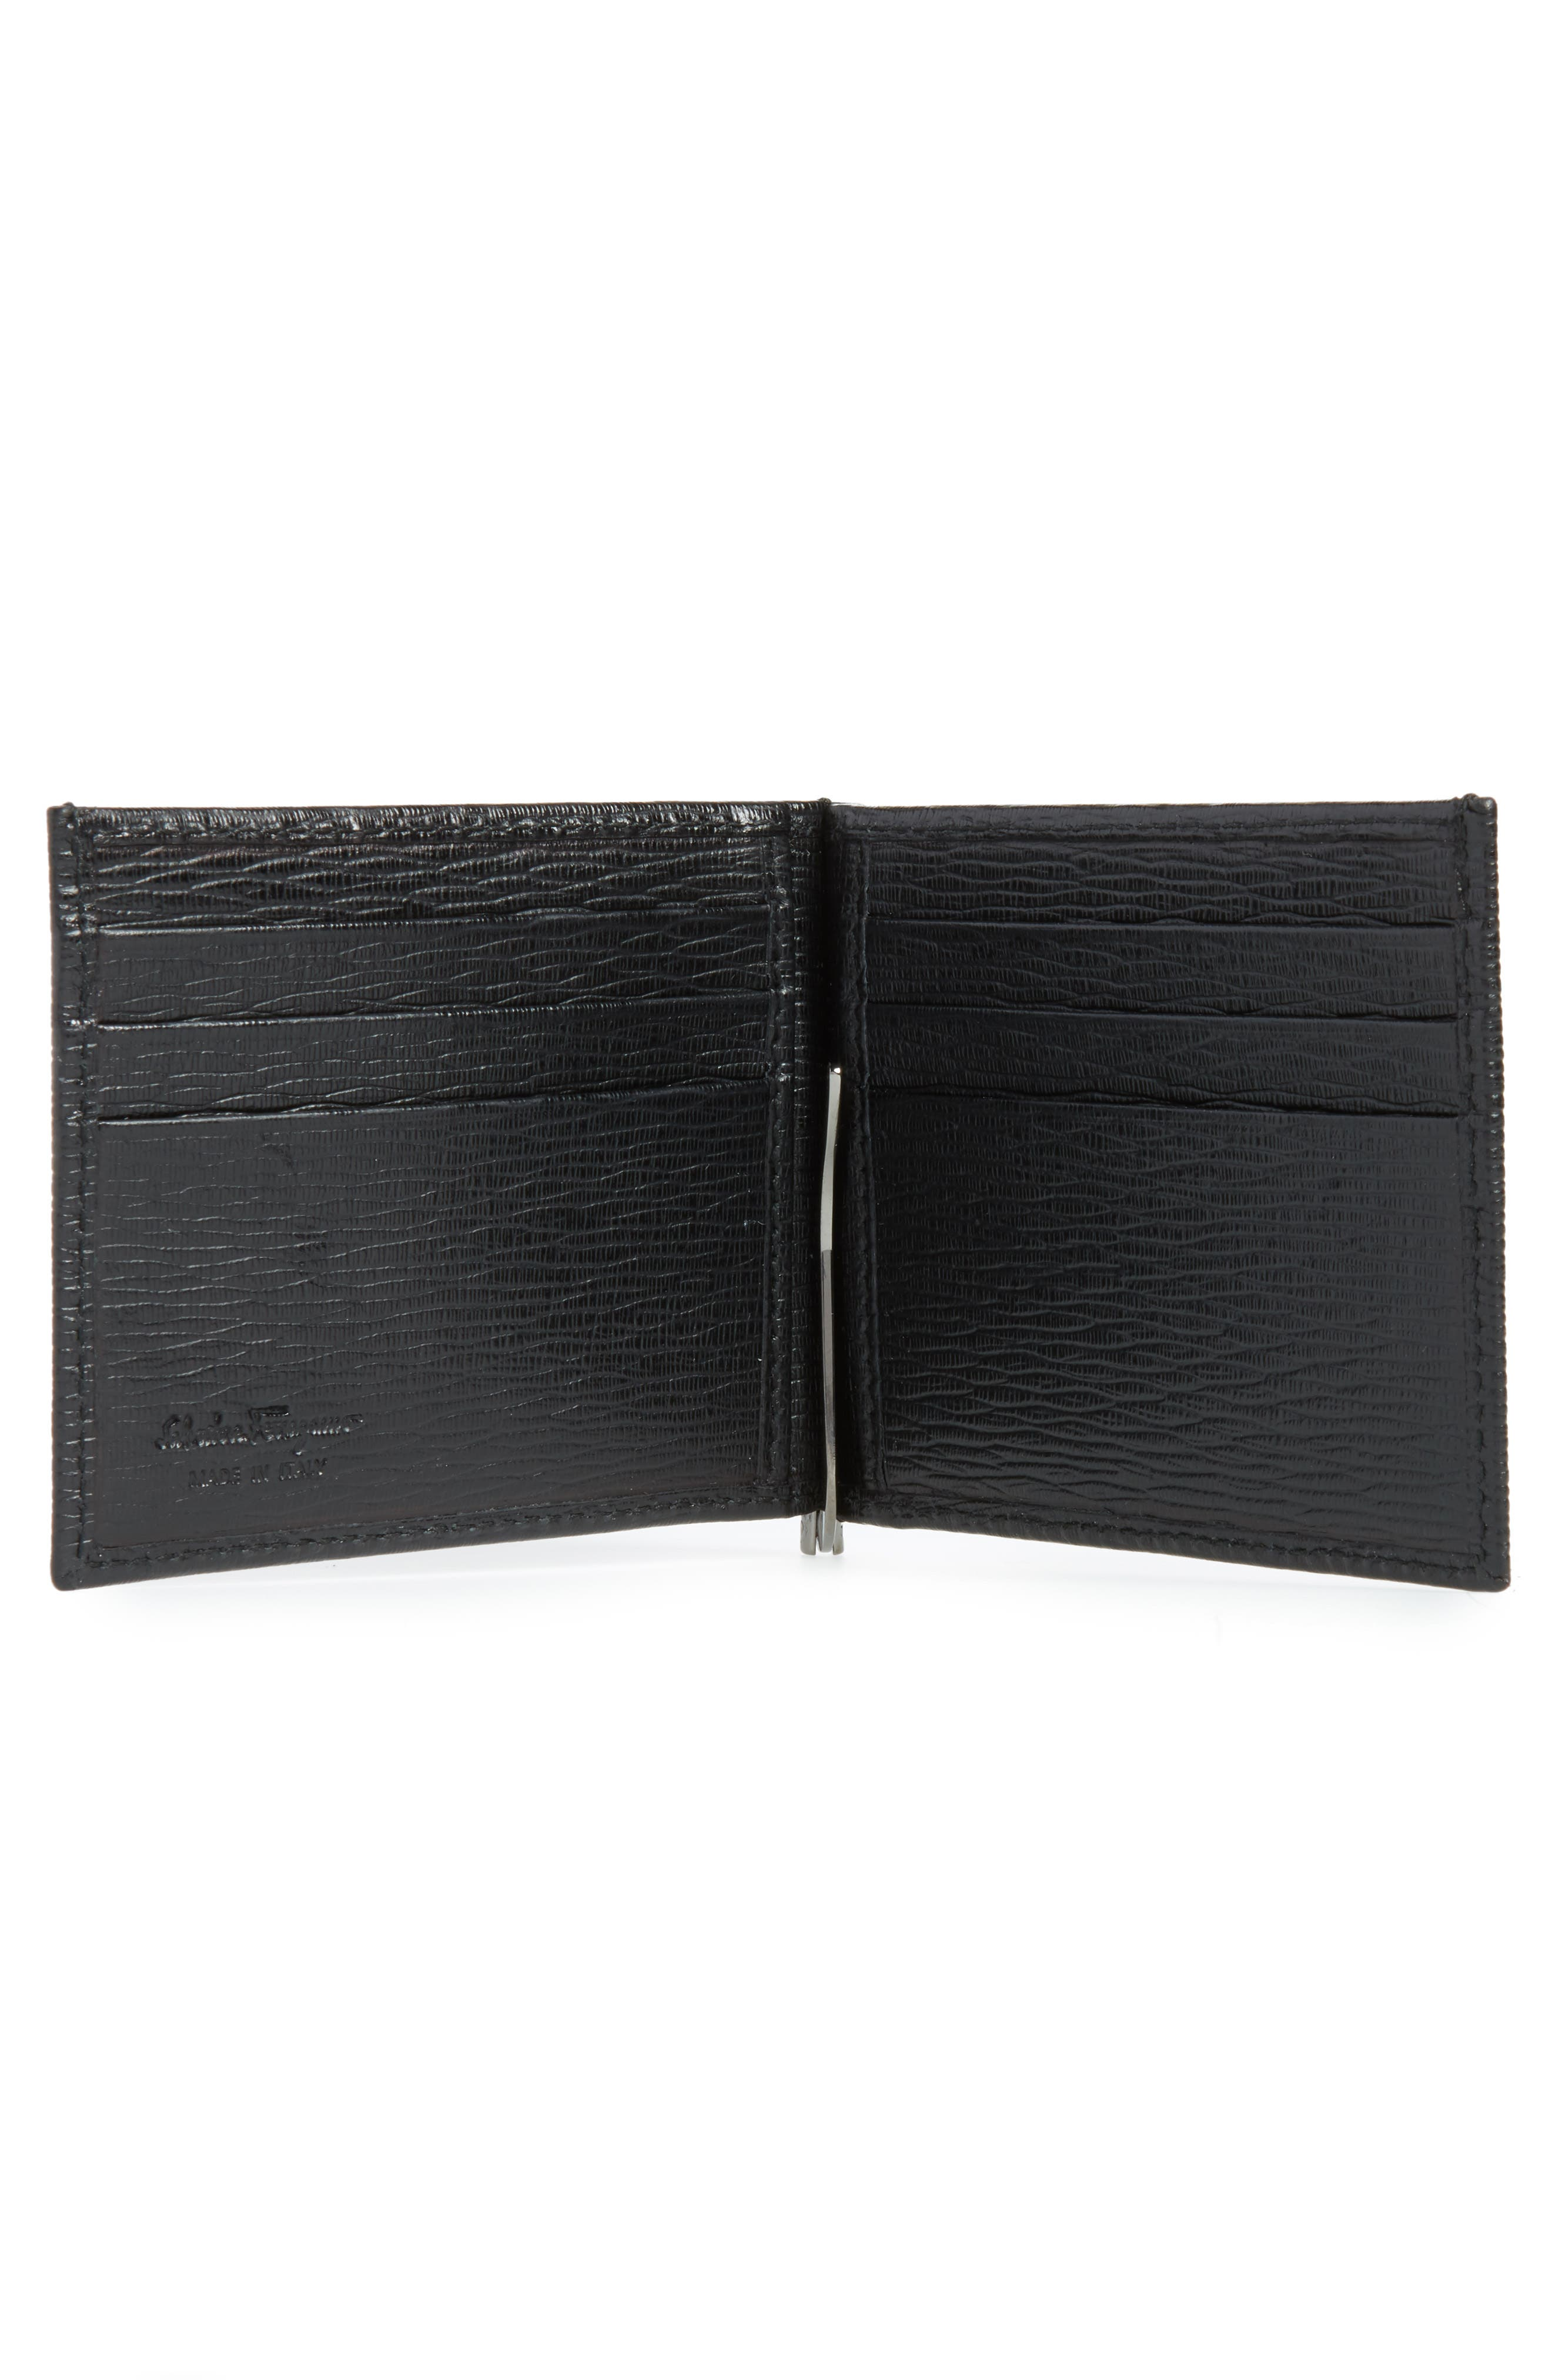 Revival Bifold Leather Wallet,                             Alternate thumbnail 2, color,                             NERO